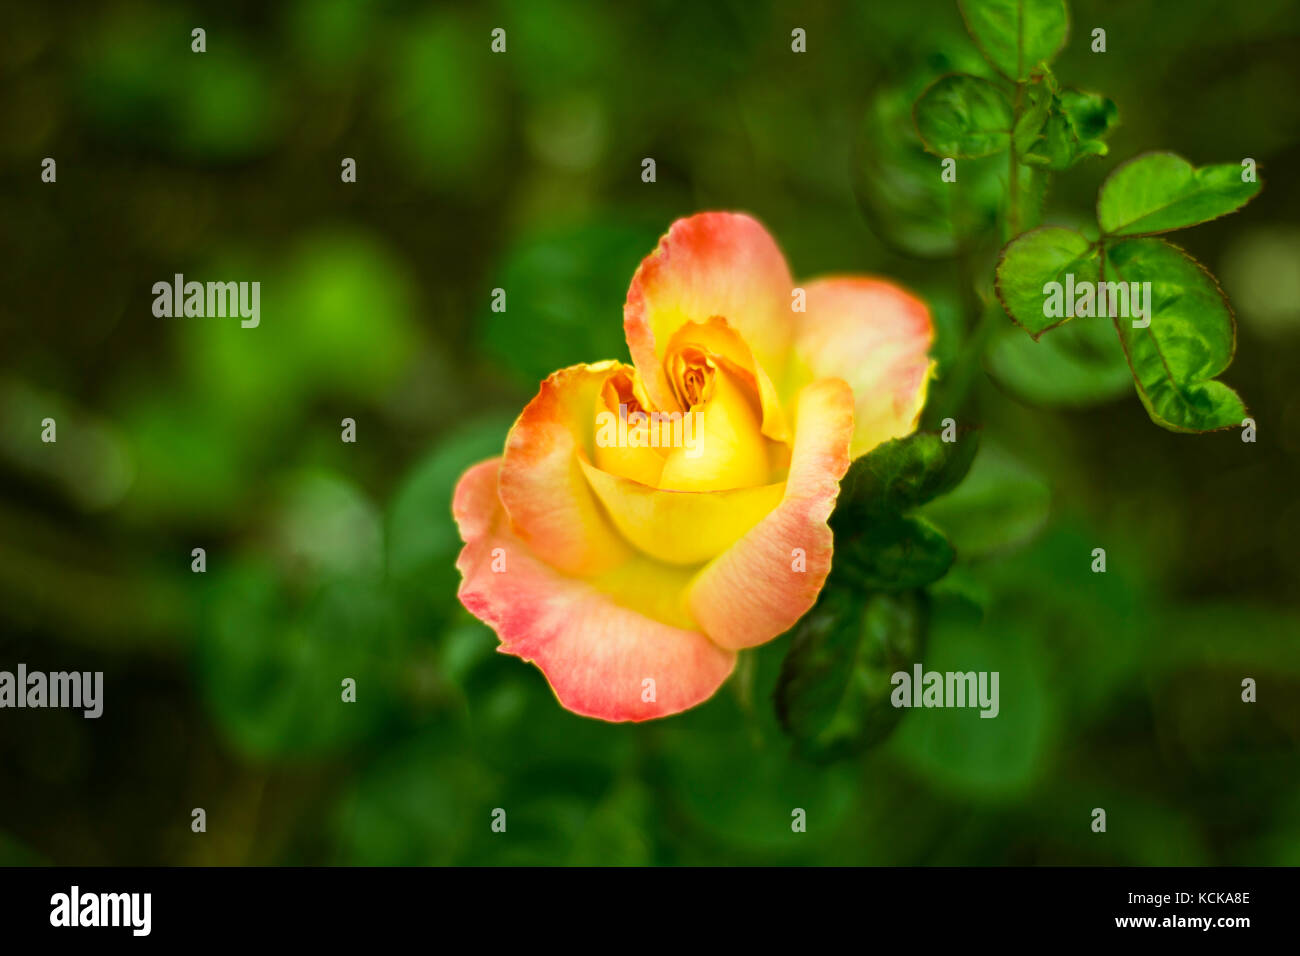 Yellow Garden Rose with redish petal edges. - Stock Image